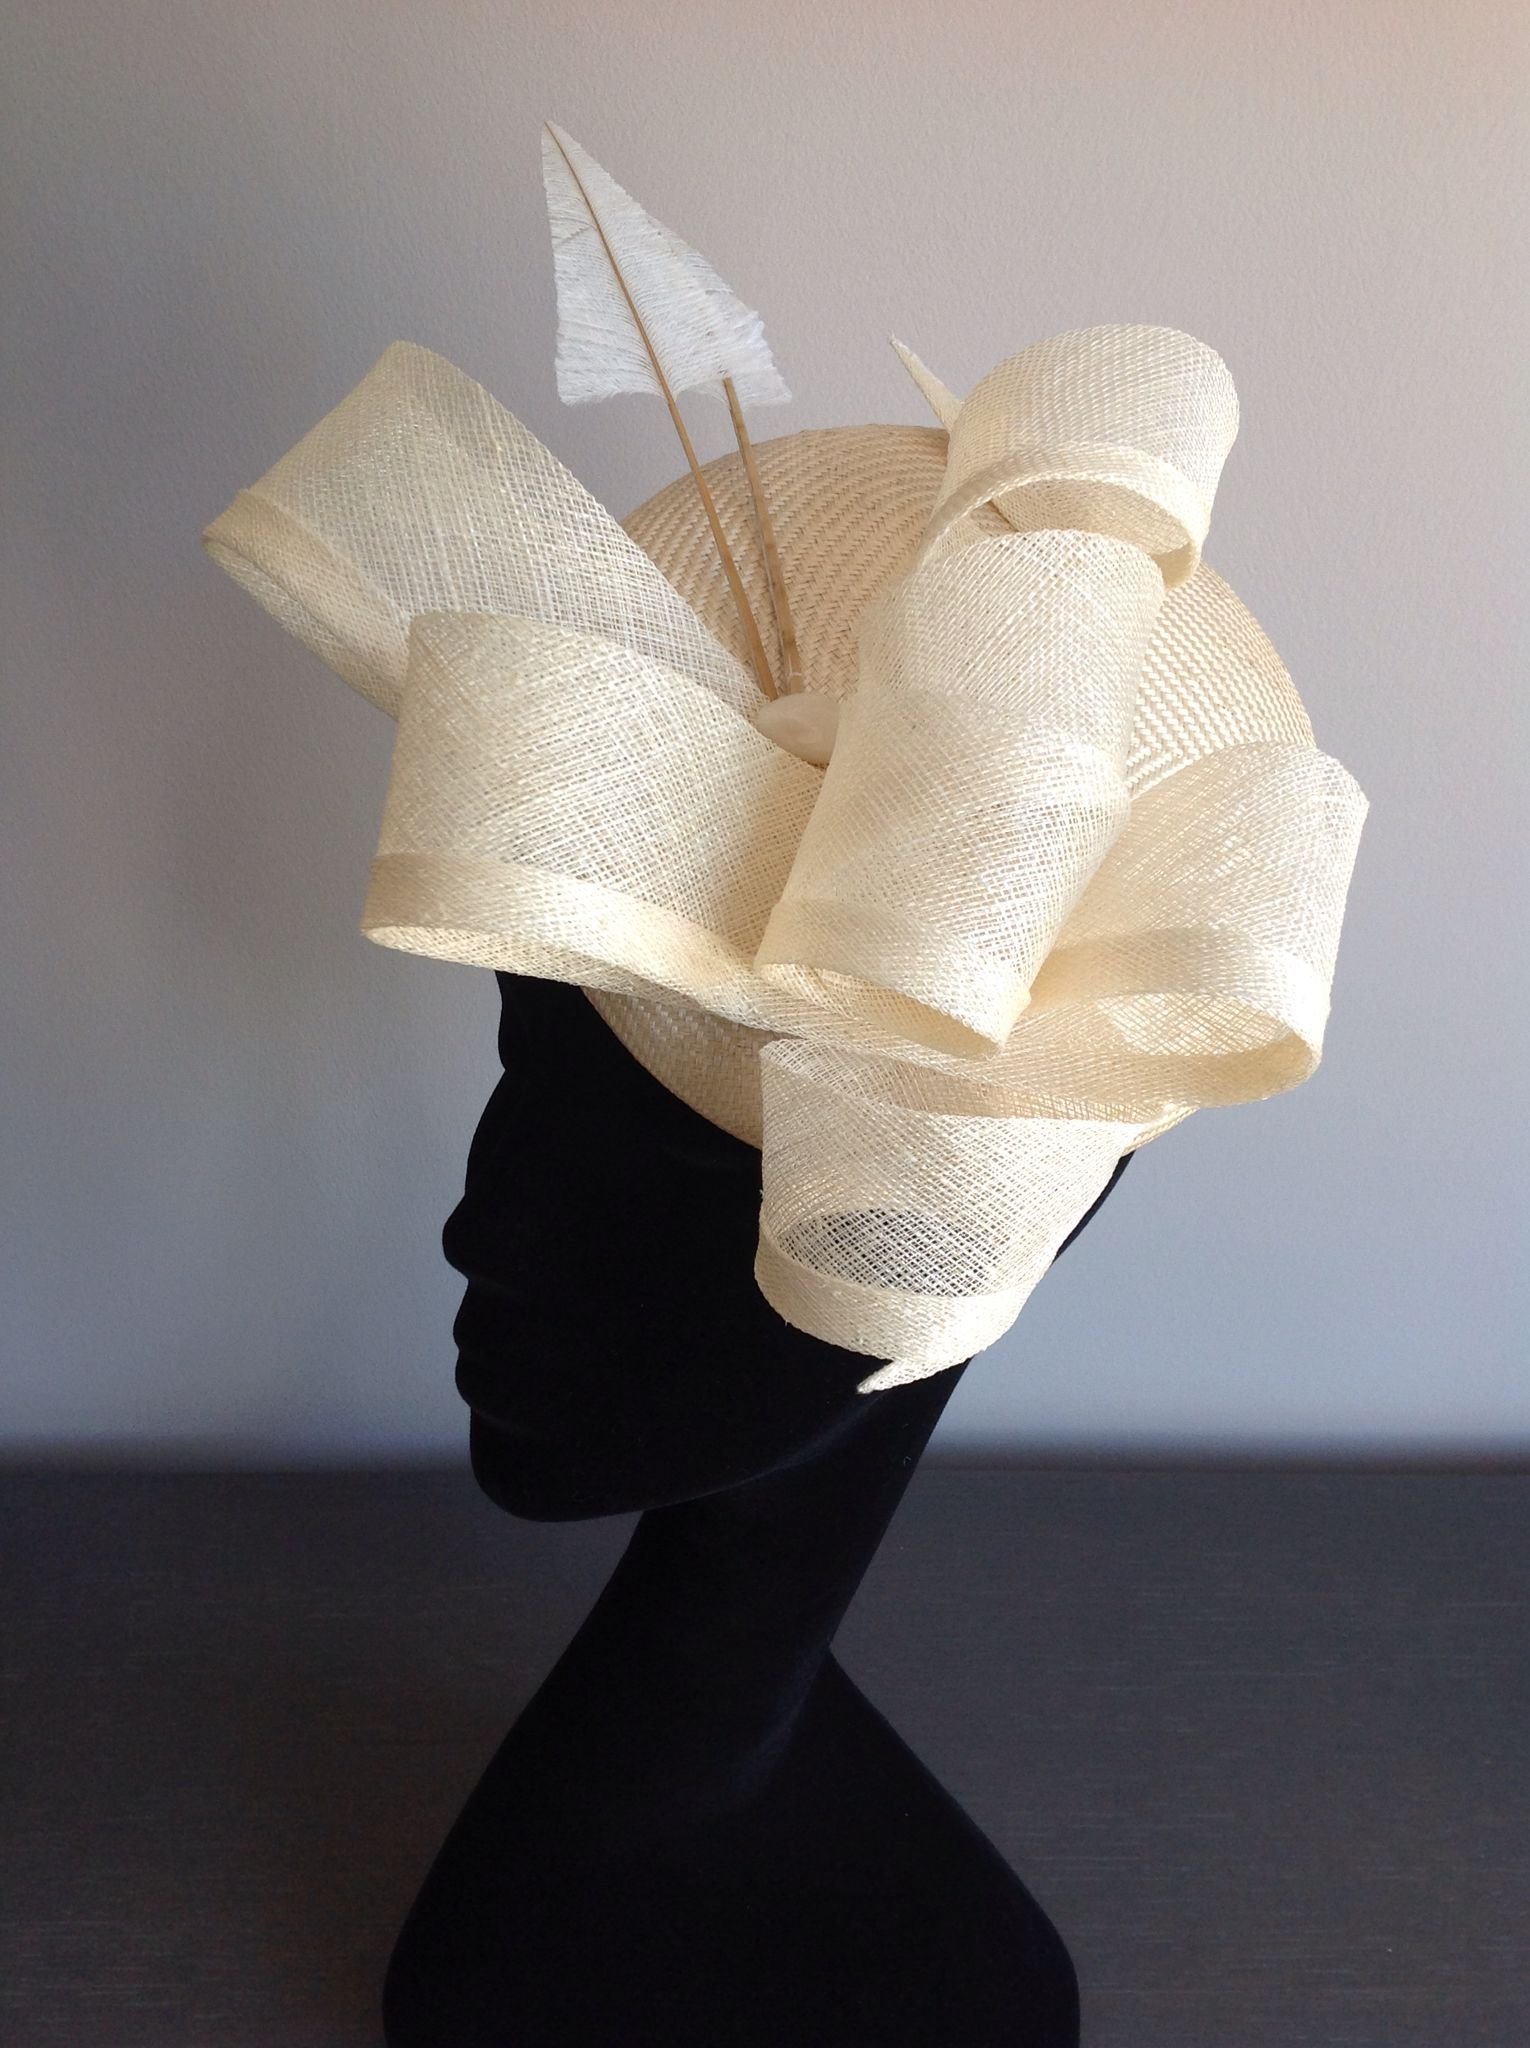 74334187f4ff5b Layers of oversized cream loops attached to a large round straw cocktail  base by couture milliner